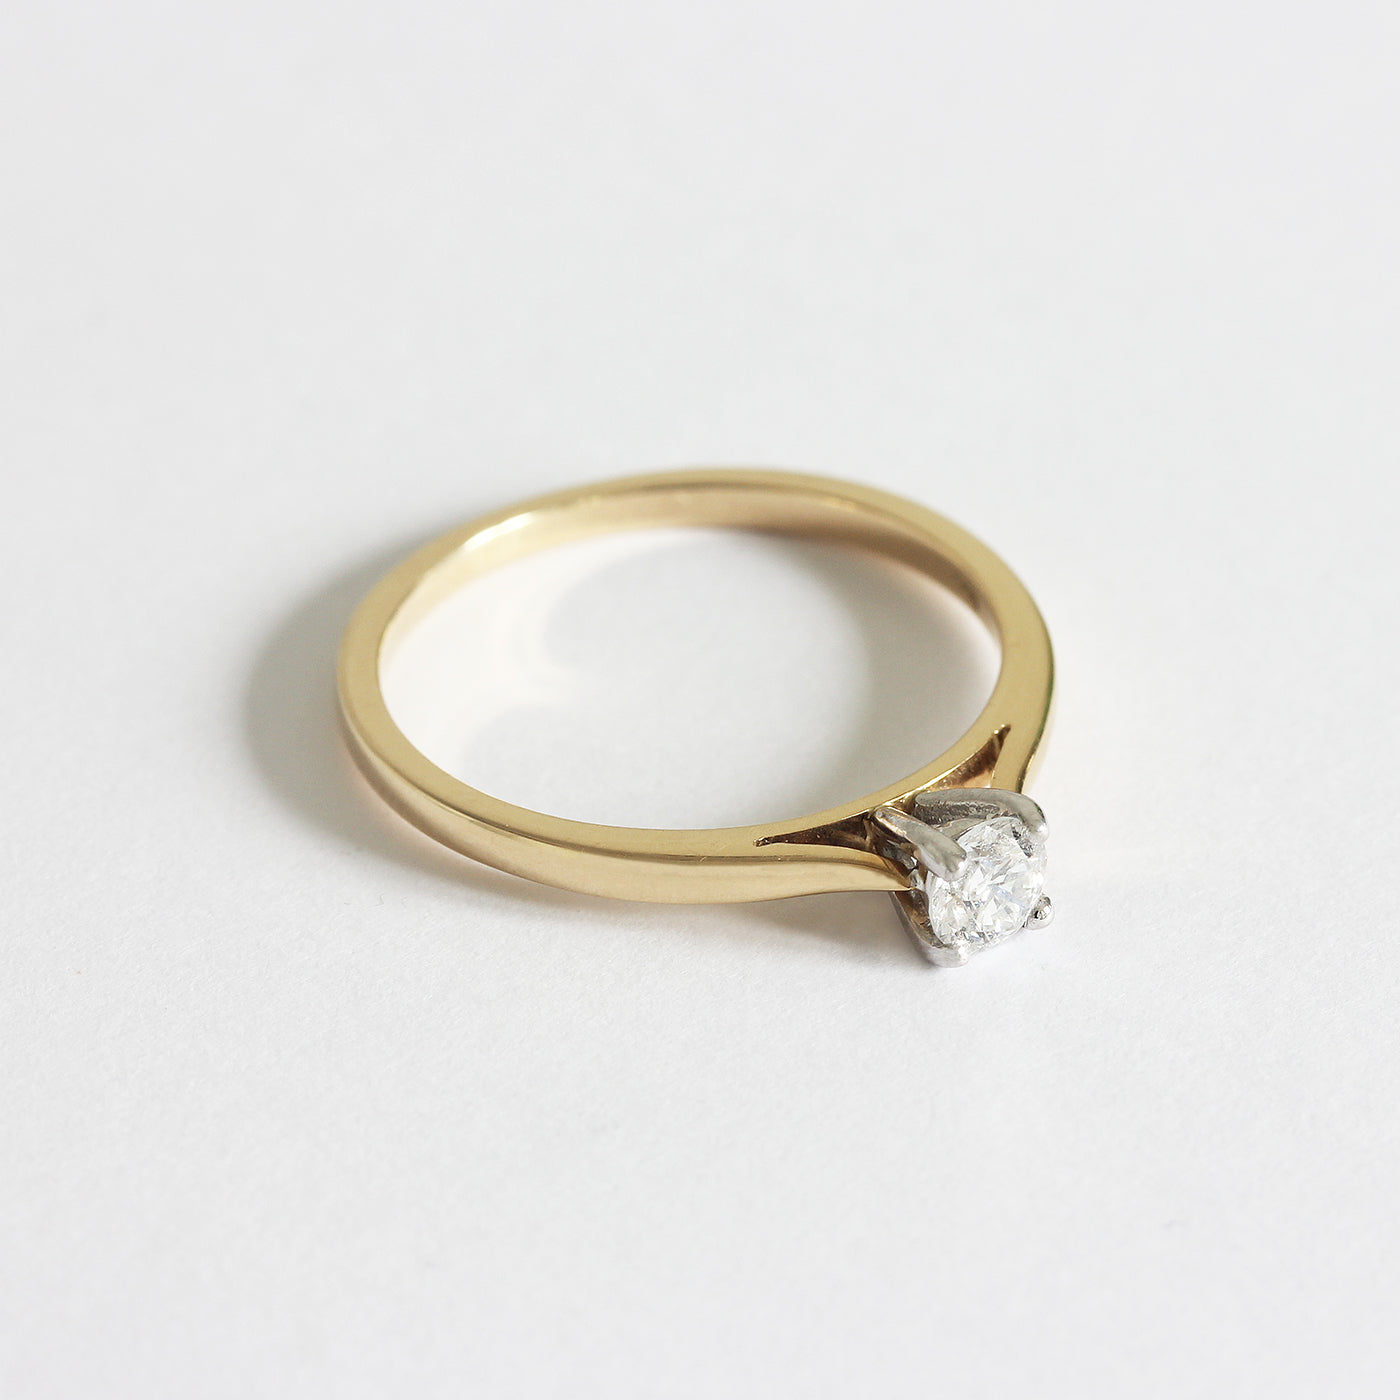 a diamond set engagement ring single stone in white and. yellow gold